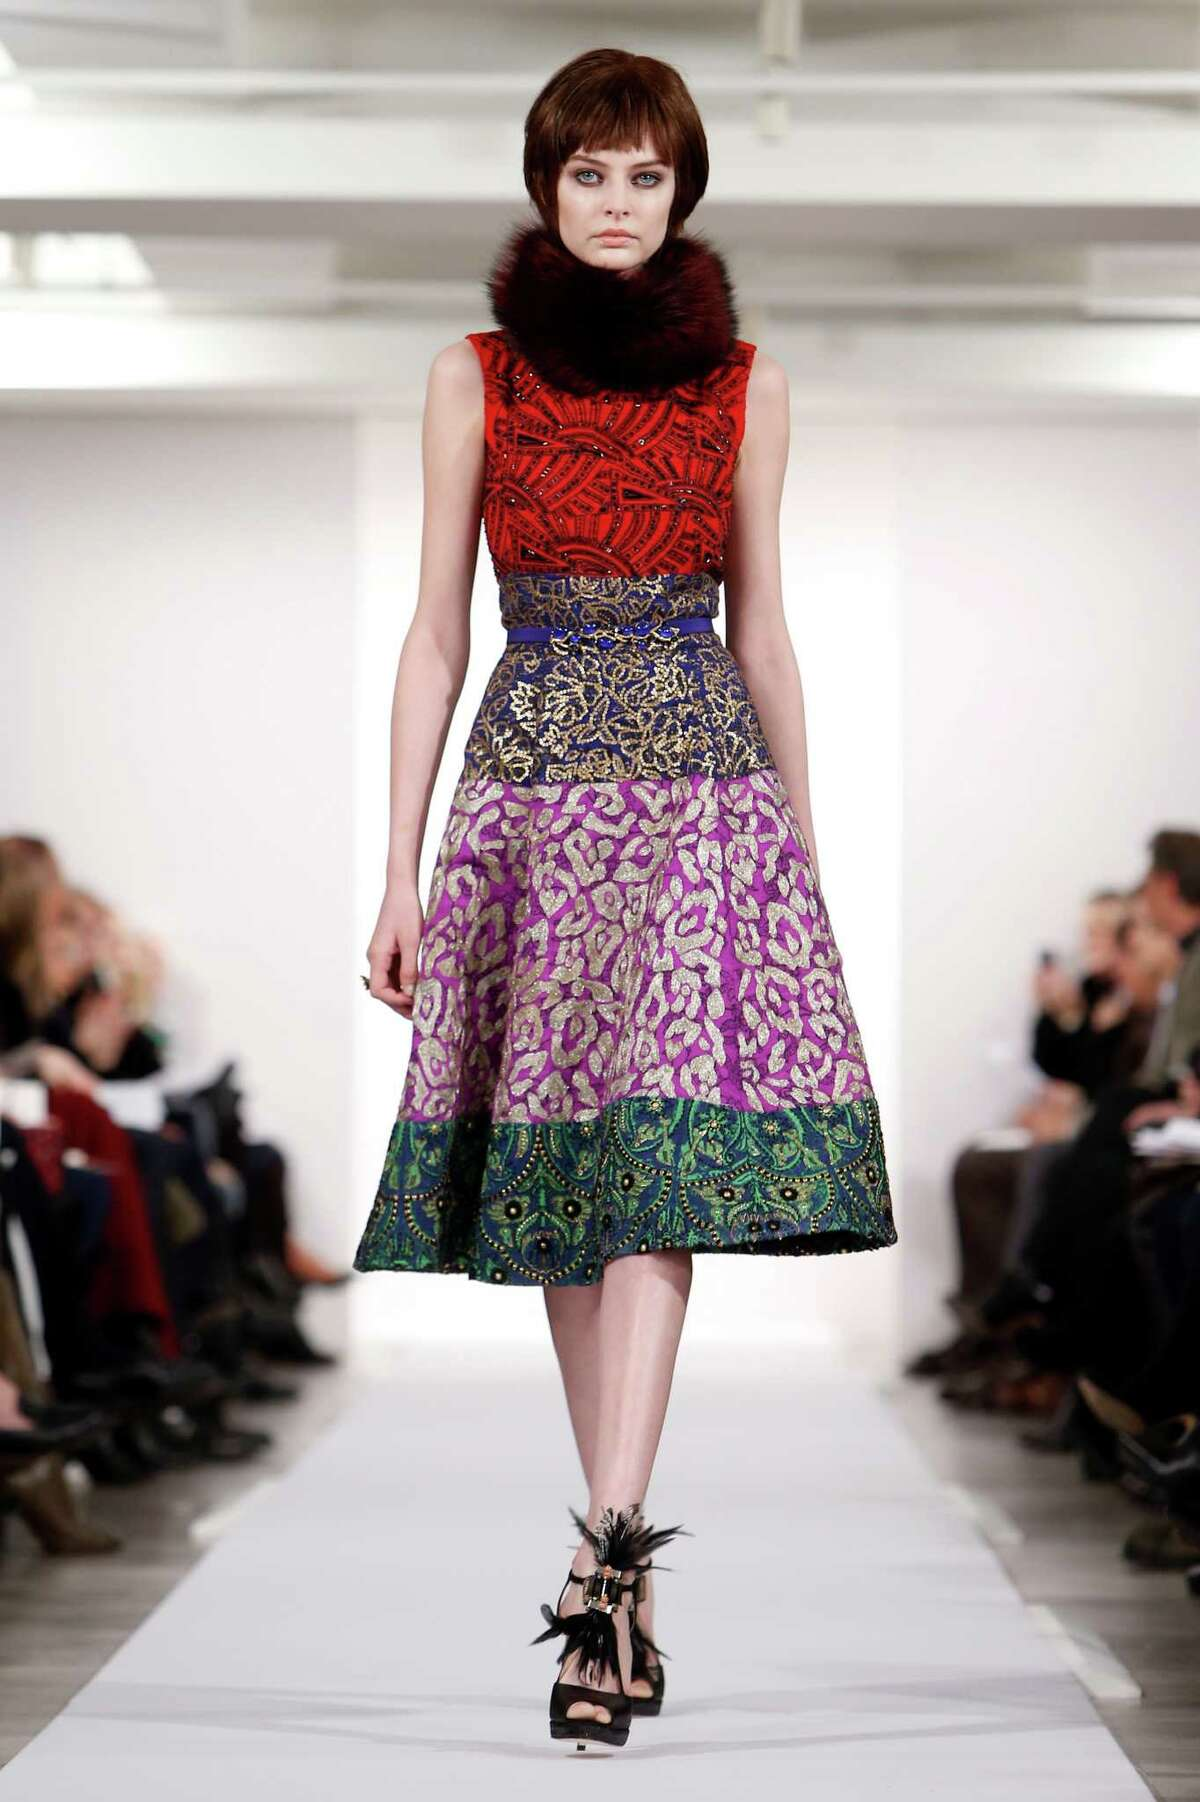 The Oscar de la Renta Fall 2014 collection is modeled during Fashion Week in New York, Tuesday, Feb. 11, 2014. (AP Photo/Jason DeCrow)